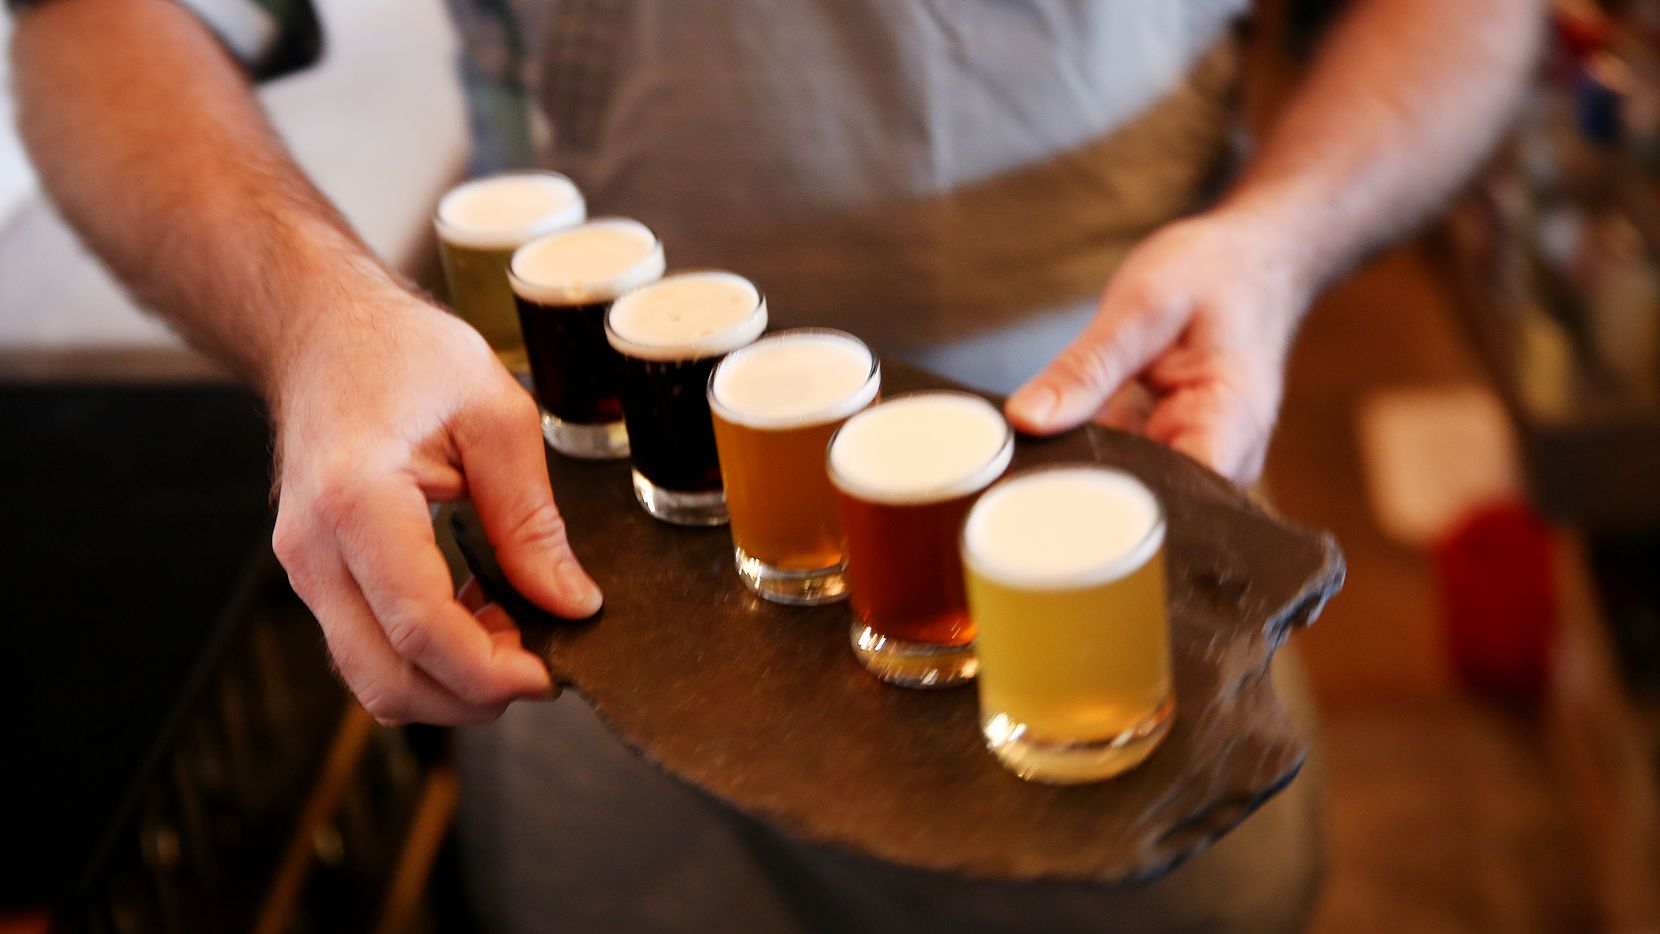 Joshua Dawn, co-owner of Small Brewpub, delivers a flight of beer to patrons inside the Oak Cliff restaurant. Get there before it closes in December 2019.